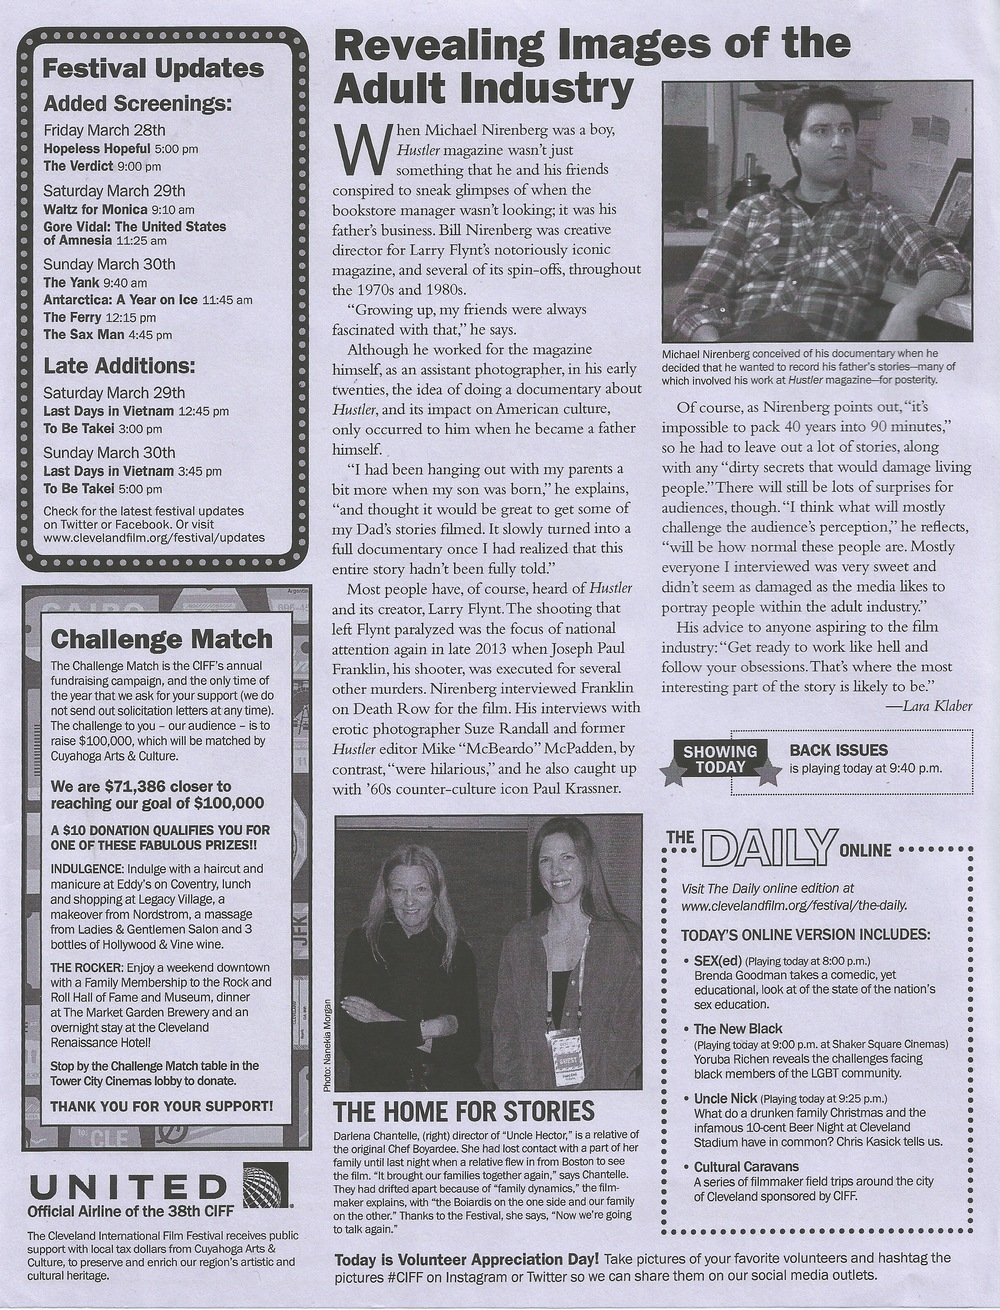 CIFF36_The_Daily_pg2_interview.jpeg